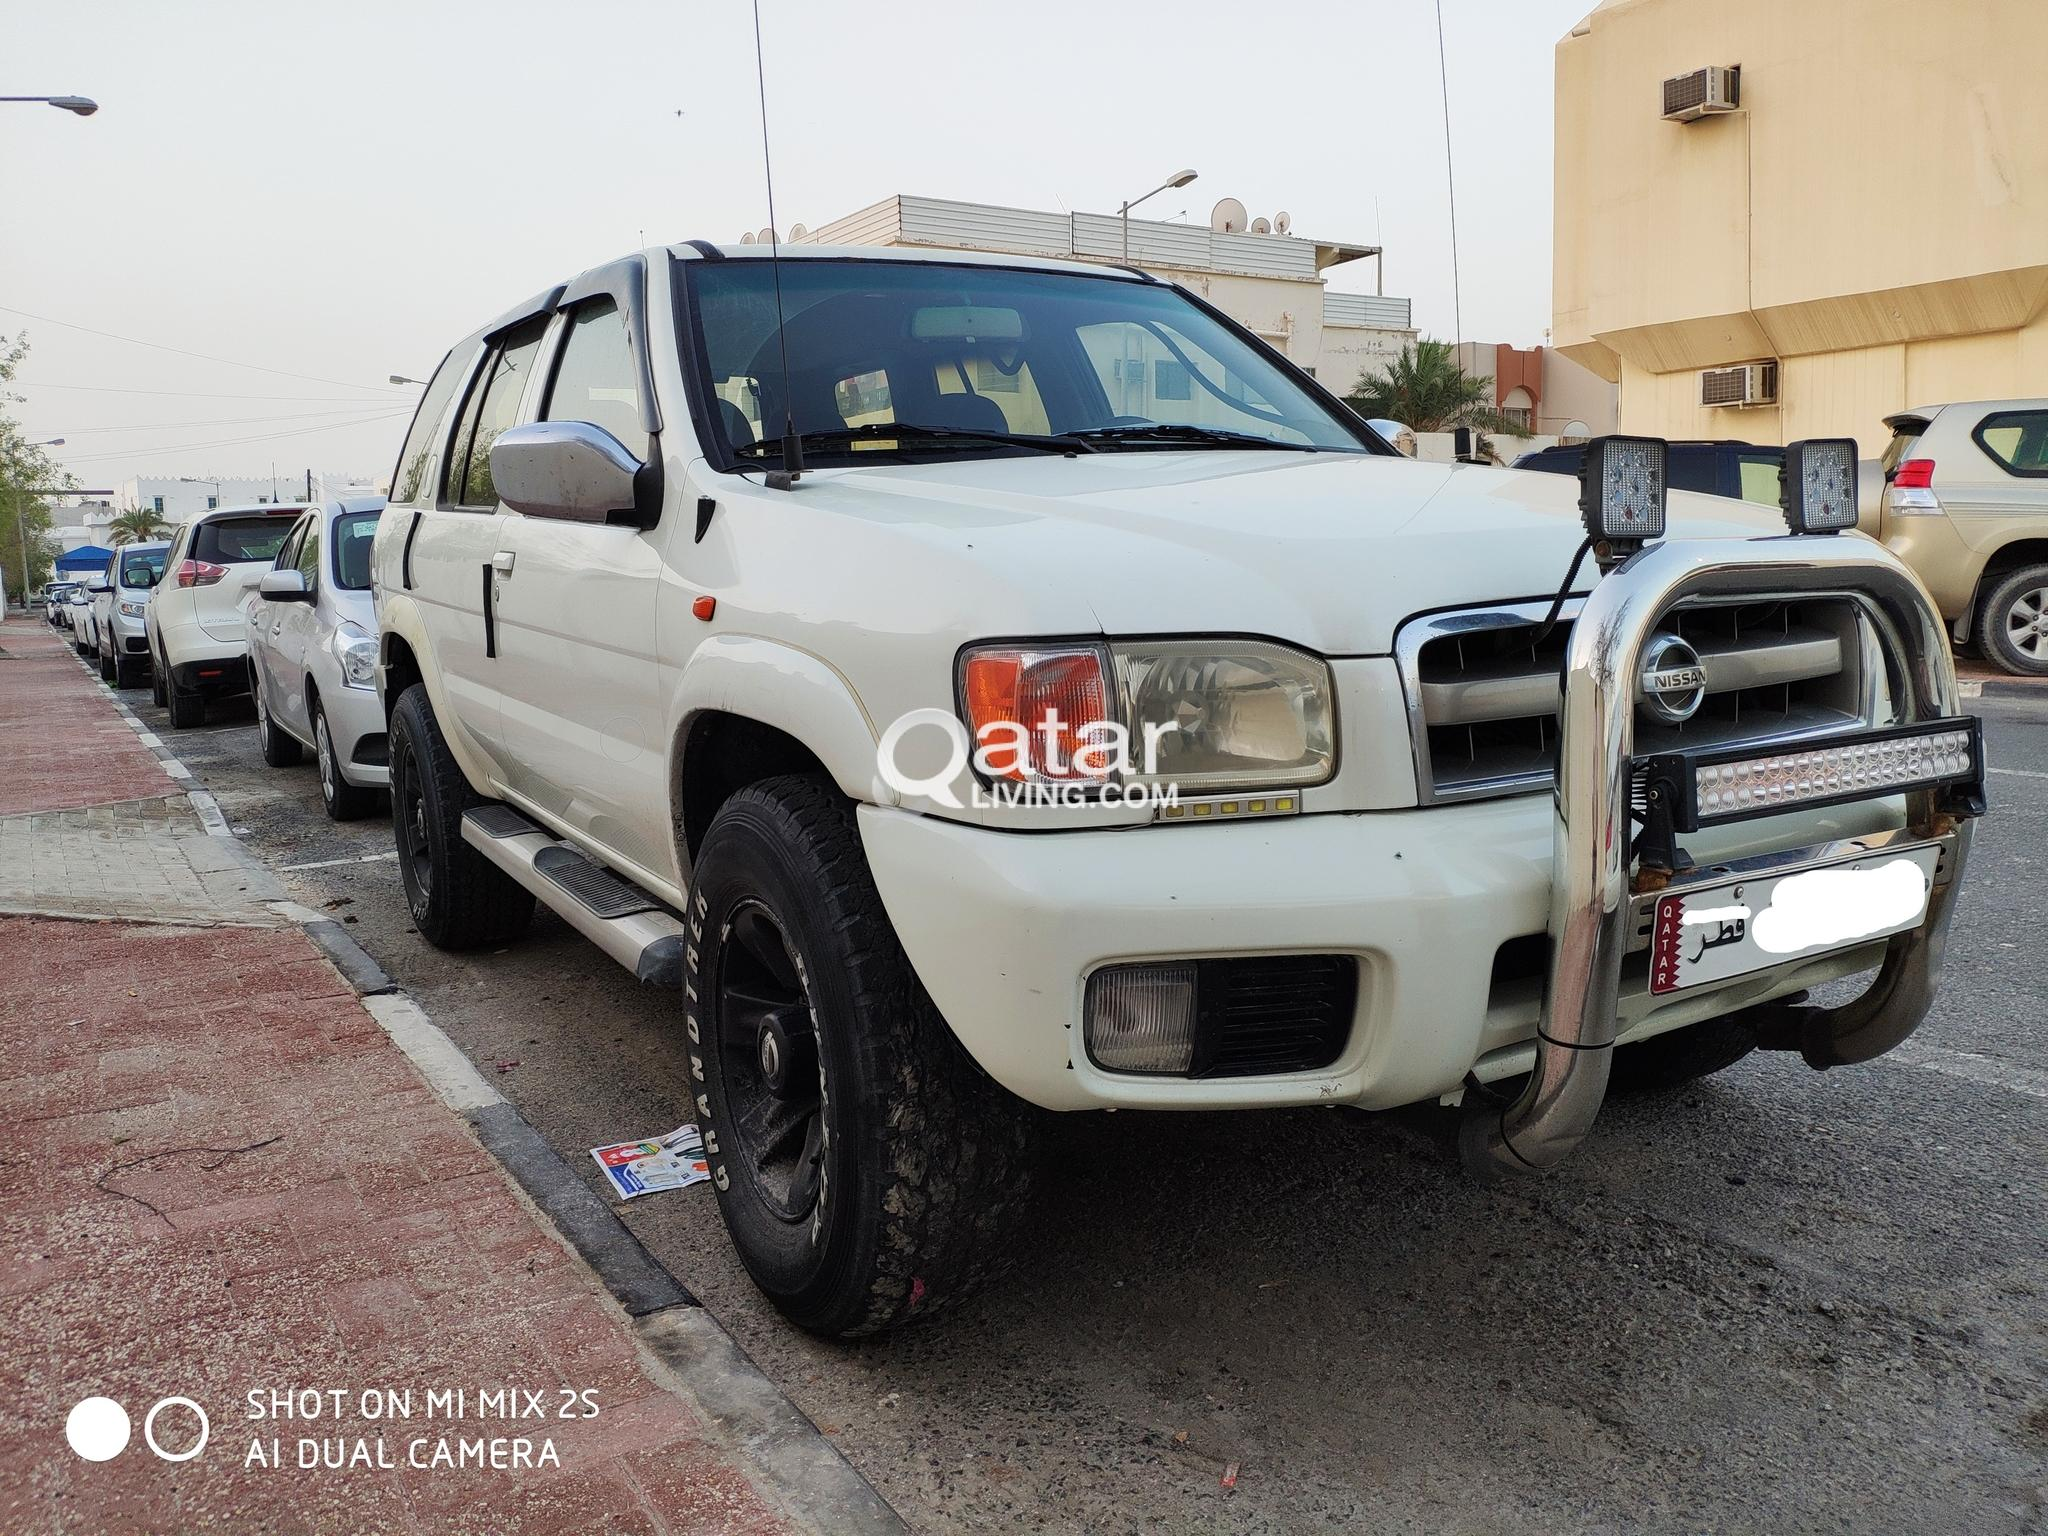 Nissan Pathfinder 2005 modified, Well maintained